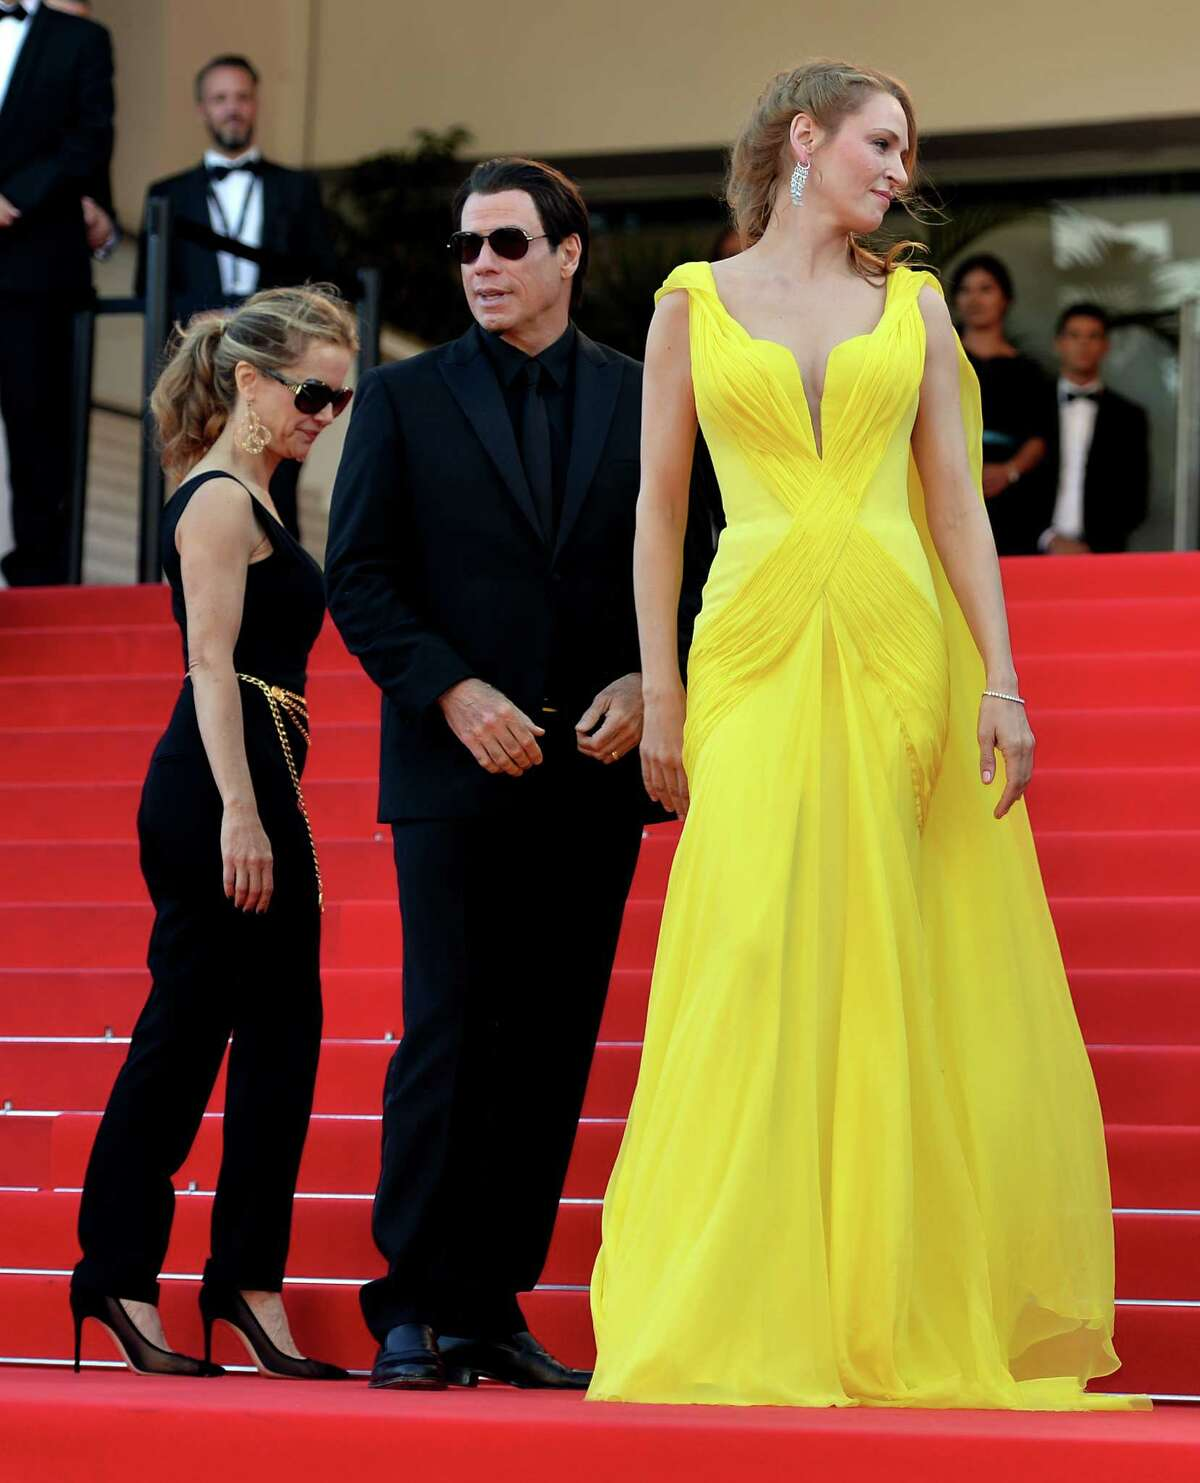 """(L to R) US actress Kelly Preston, US actor John Travolta and US actress Uma Thurman attend """"Sils Maria"""" (Clouds of Sils Maria) film screening in competition during the 67th Cannes Film Festival in Cannes, France. May 23, 2014. (Photo by Mustafa Yalcin/Anadolu Agency/Getty Images)Related stories: Turkish drama 'Winter Sleep' wins Palme d'Or PHOTO GALLERY: Cannes' fashion highs"""